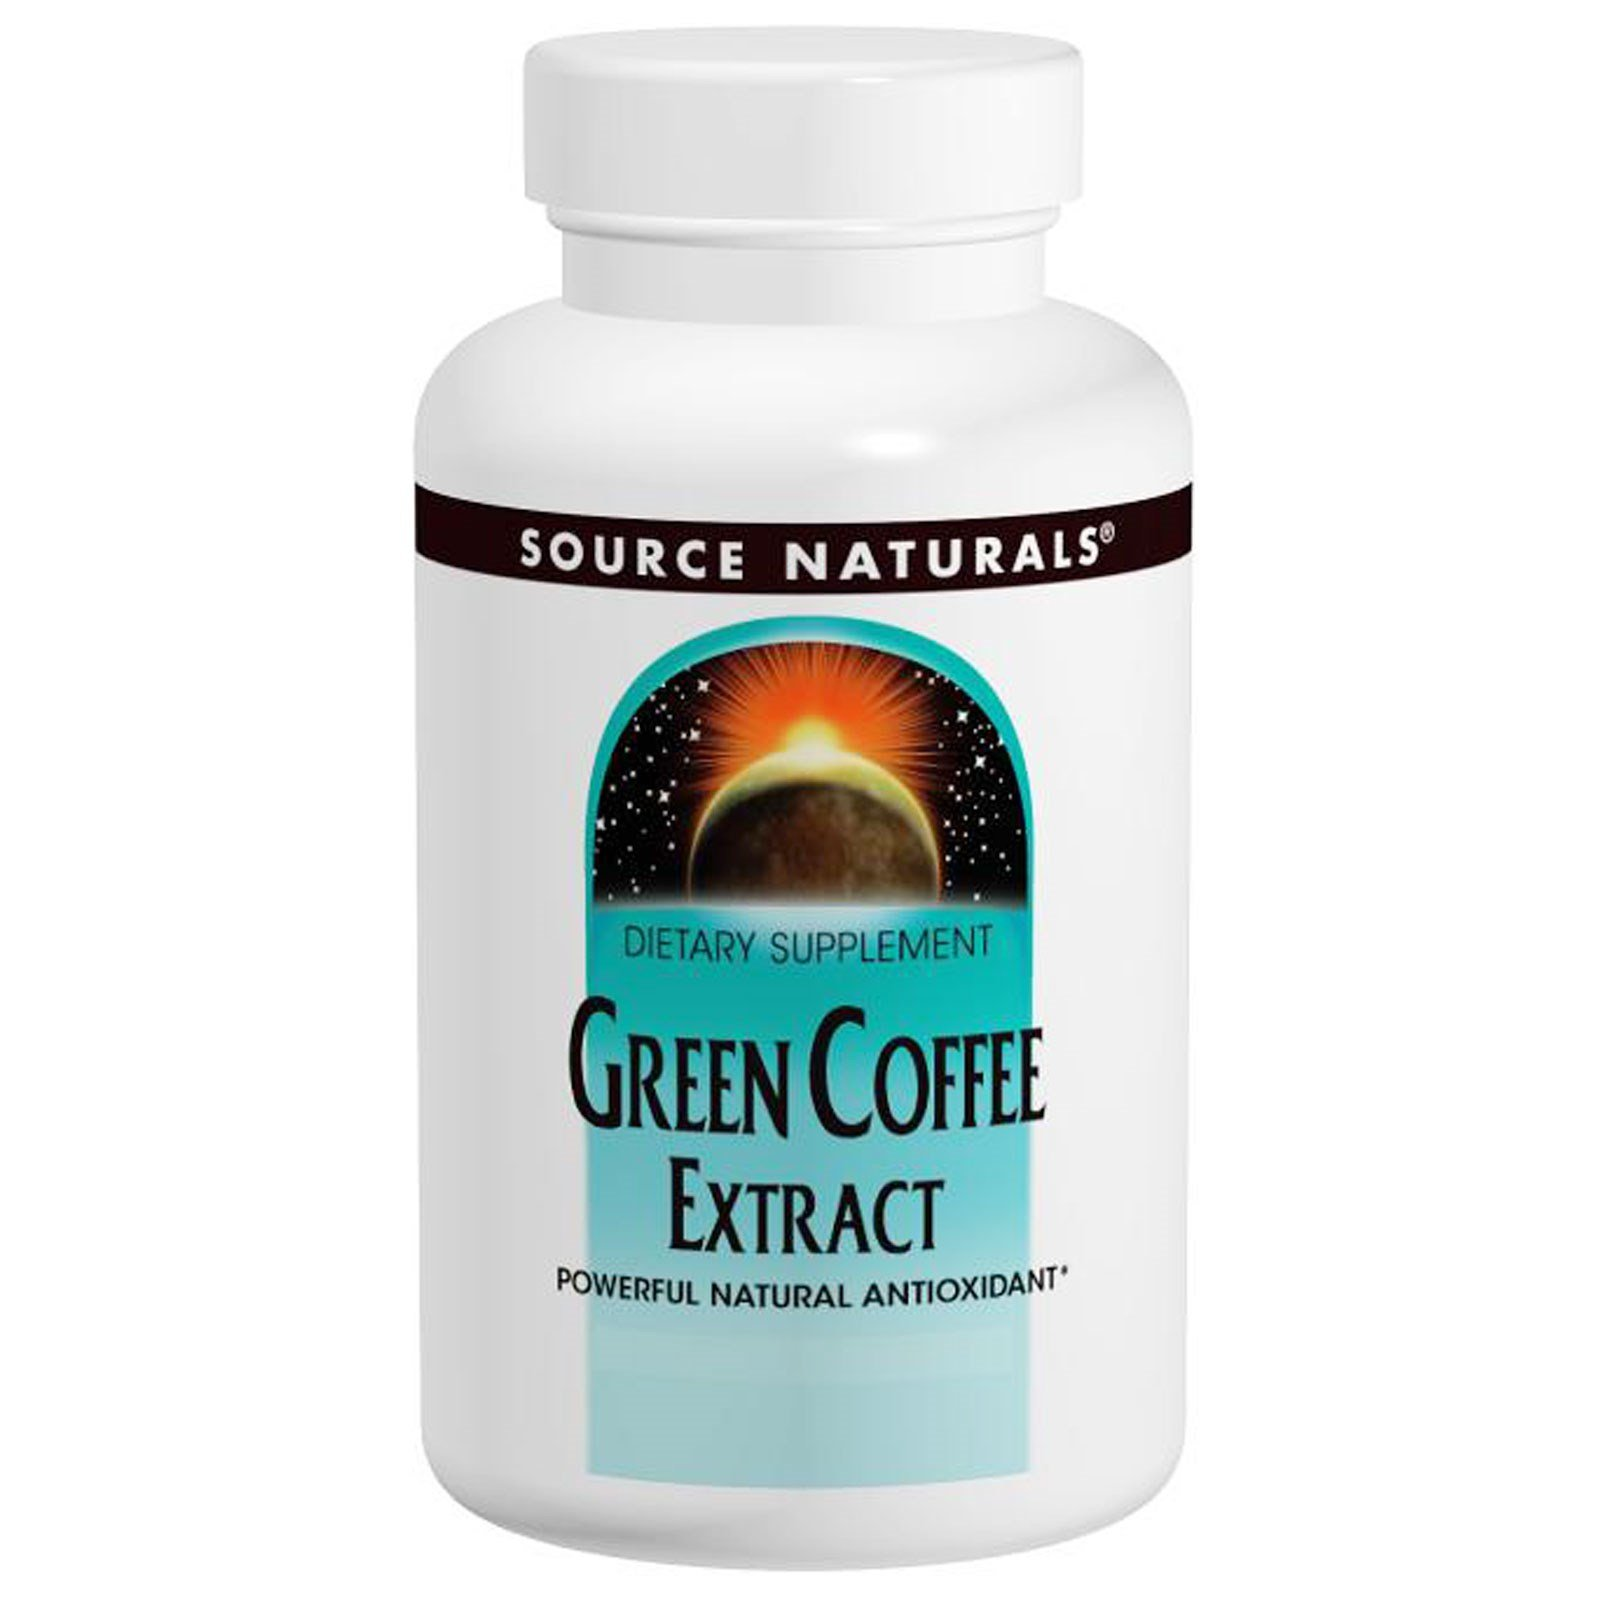 Source Naturals, Green Coffee Extract, 500 mg, 60 Tablets - 3PC